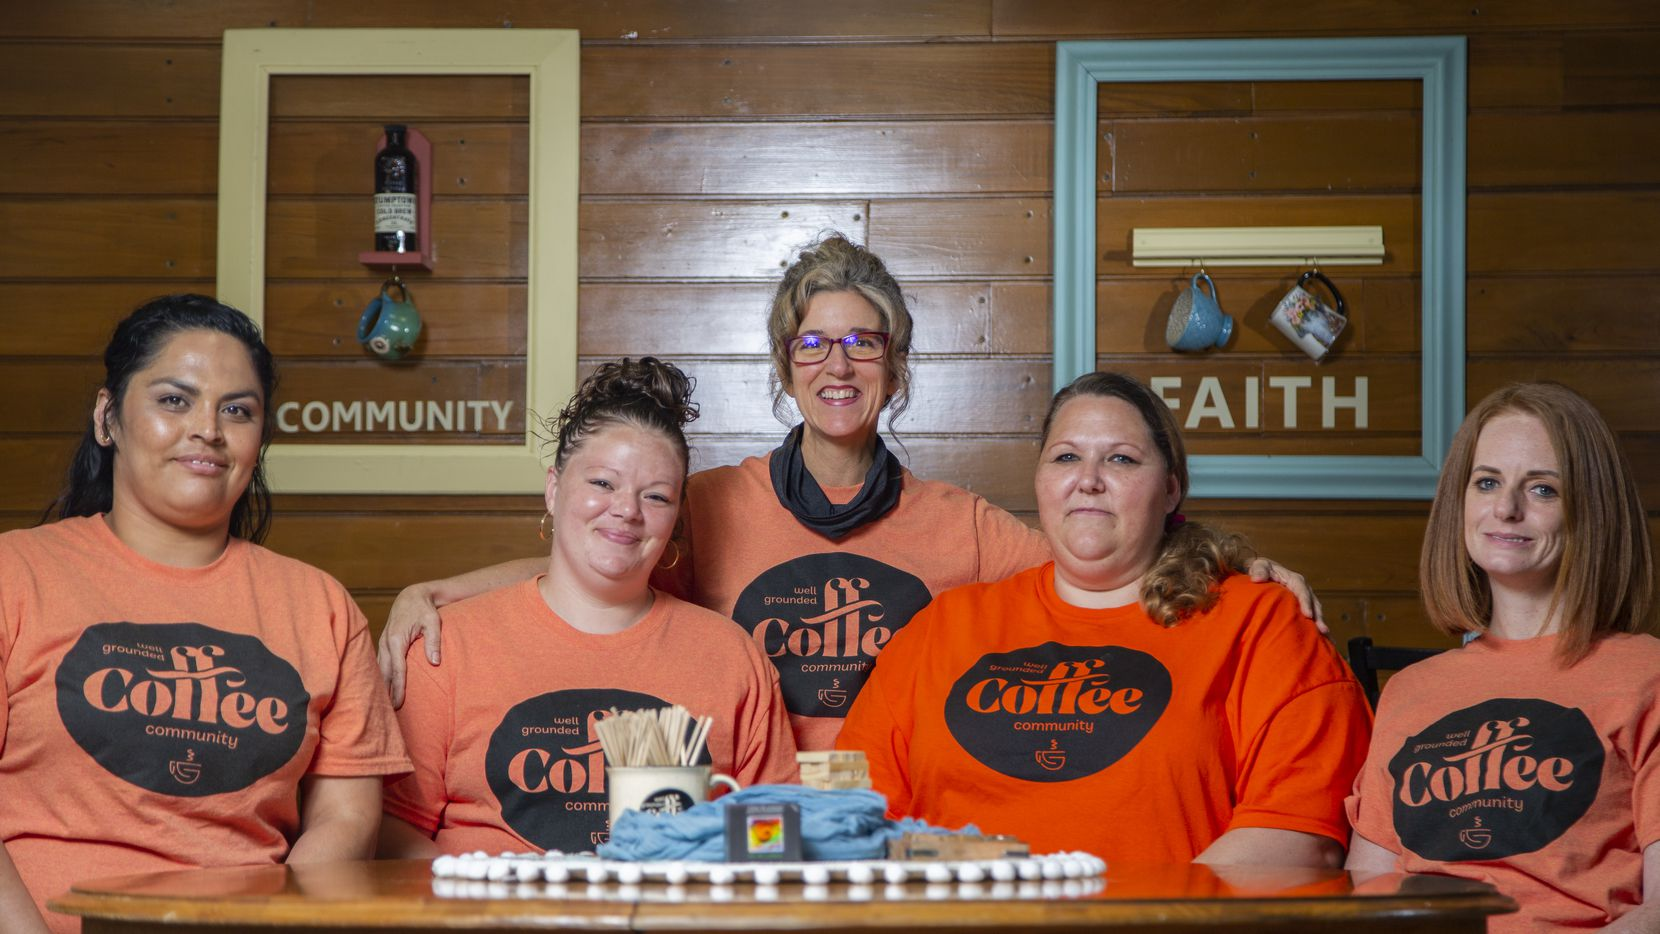 Well Grounded Coffee Community owner Natalie Huscheck (center) says her life has been blessed by her interactions with her employees Maricela Espinosa (from left), Hannah Dorsey, Angela Walterscheid and Natasha Weir.